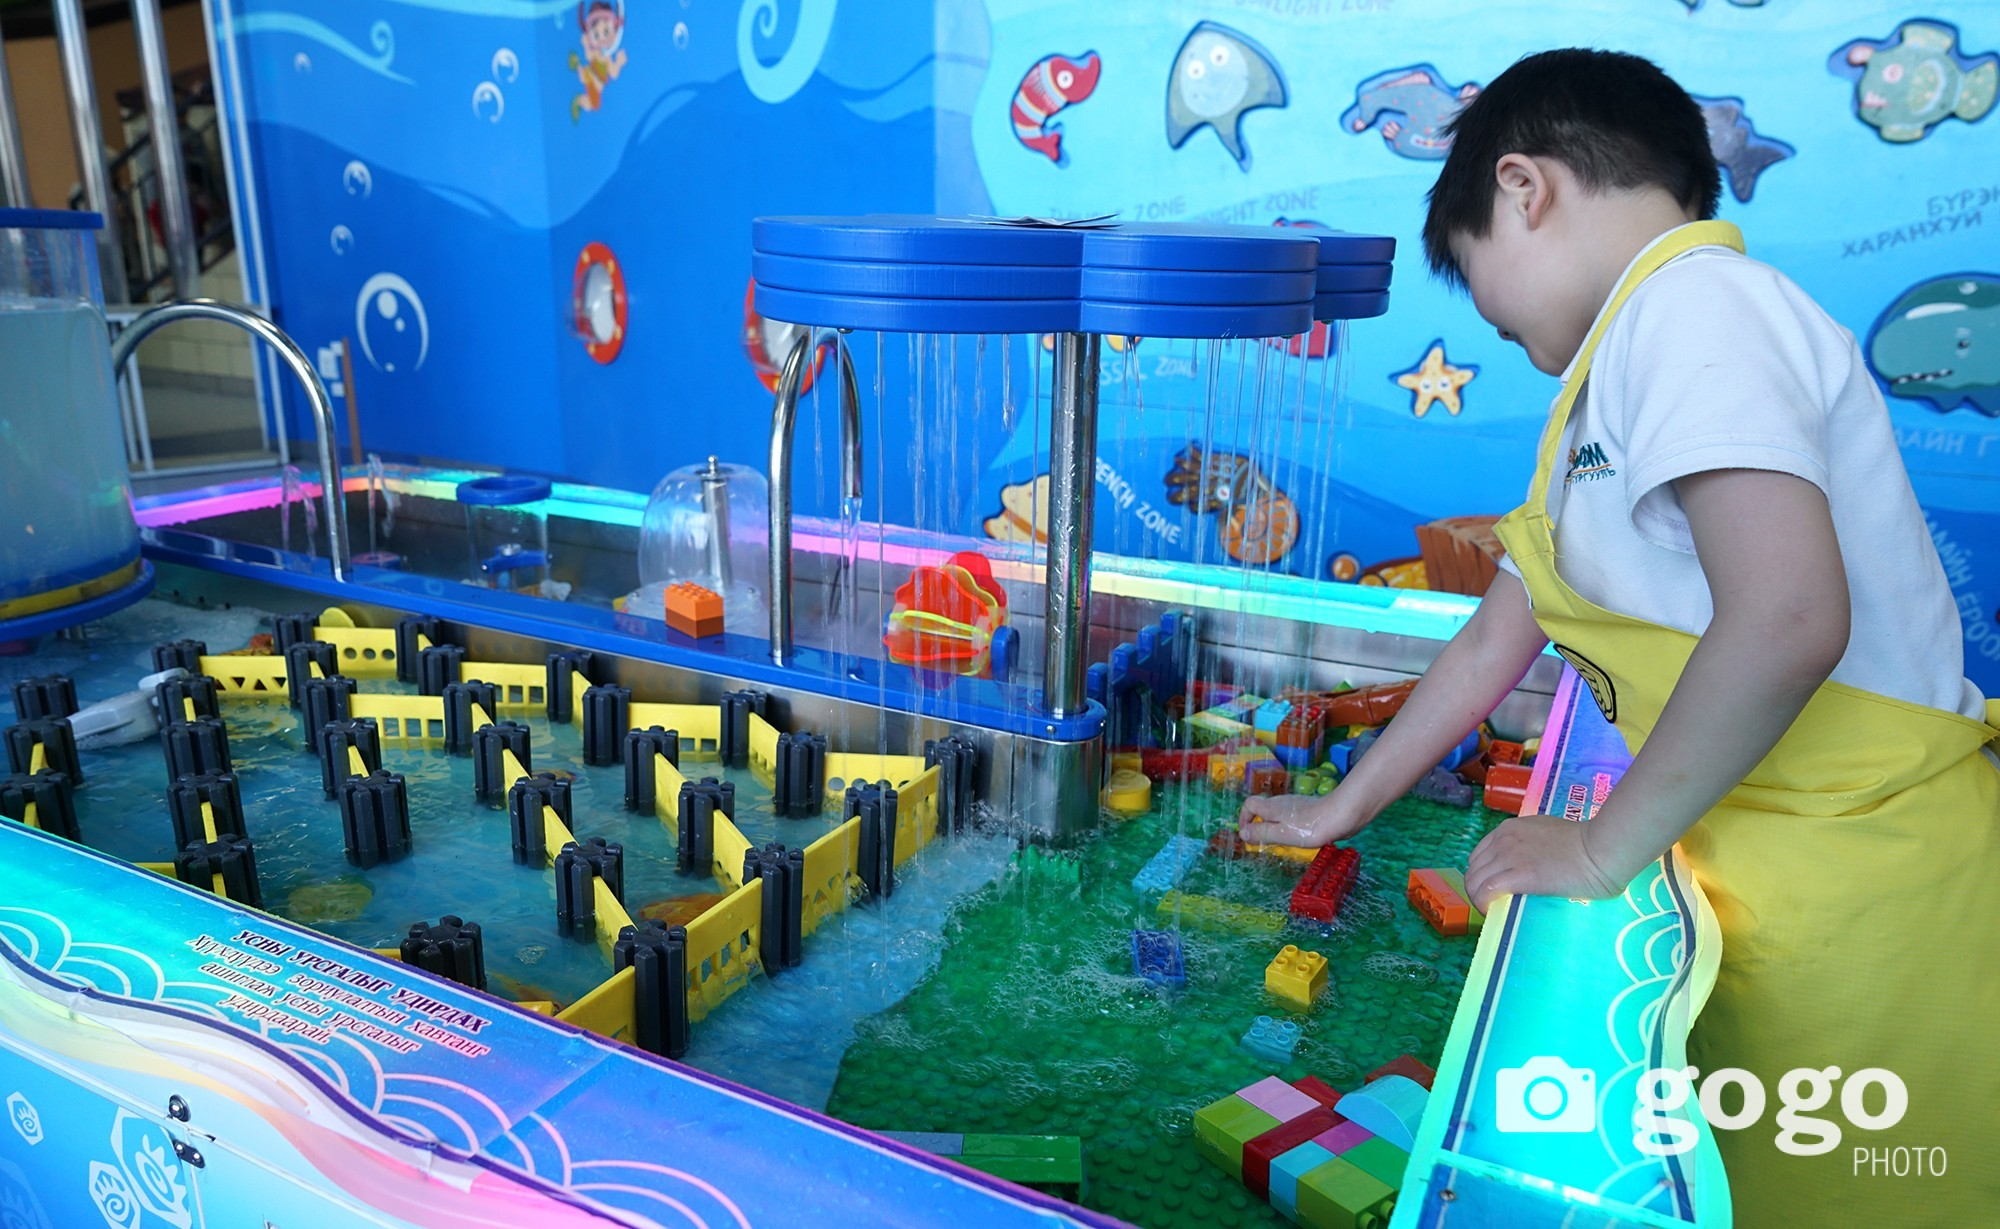 Children like to play with water. Here, they can play as long as they want by also learning to save water. Also, this section is built for making experiments using water flow and pressure.